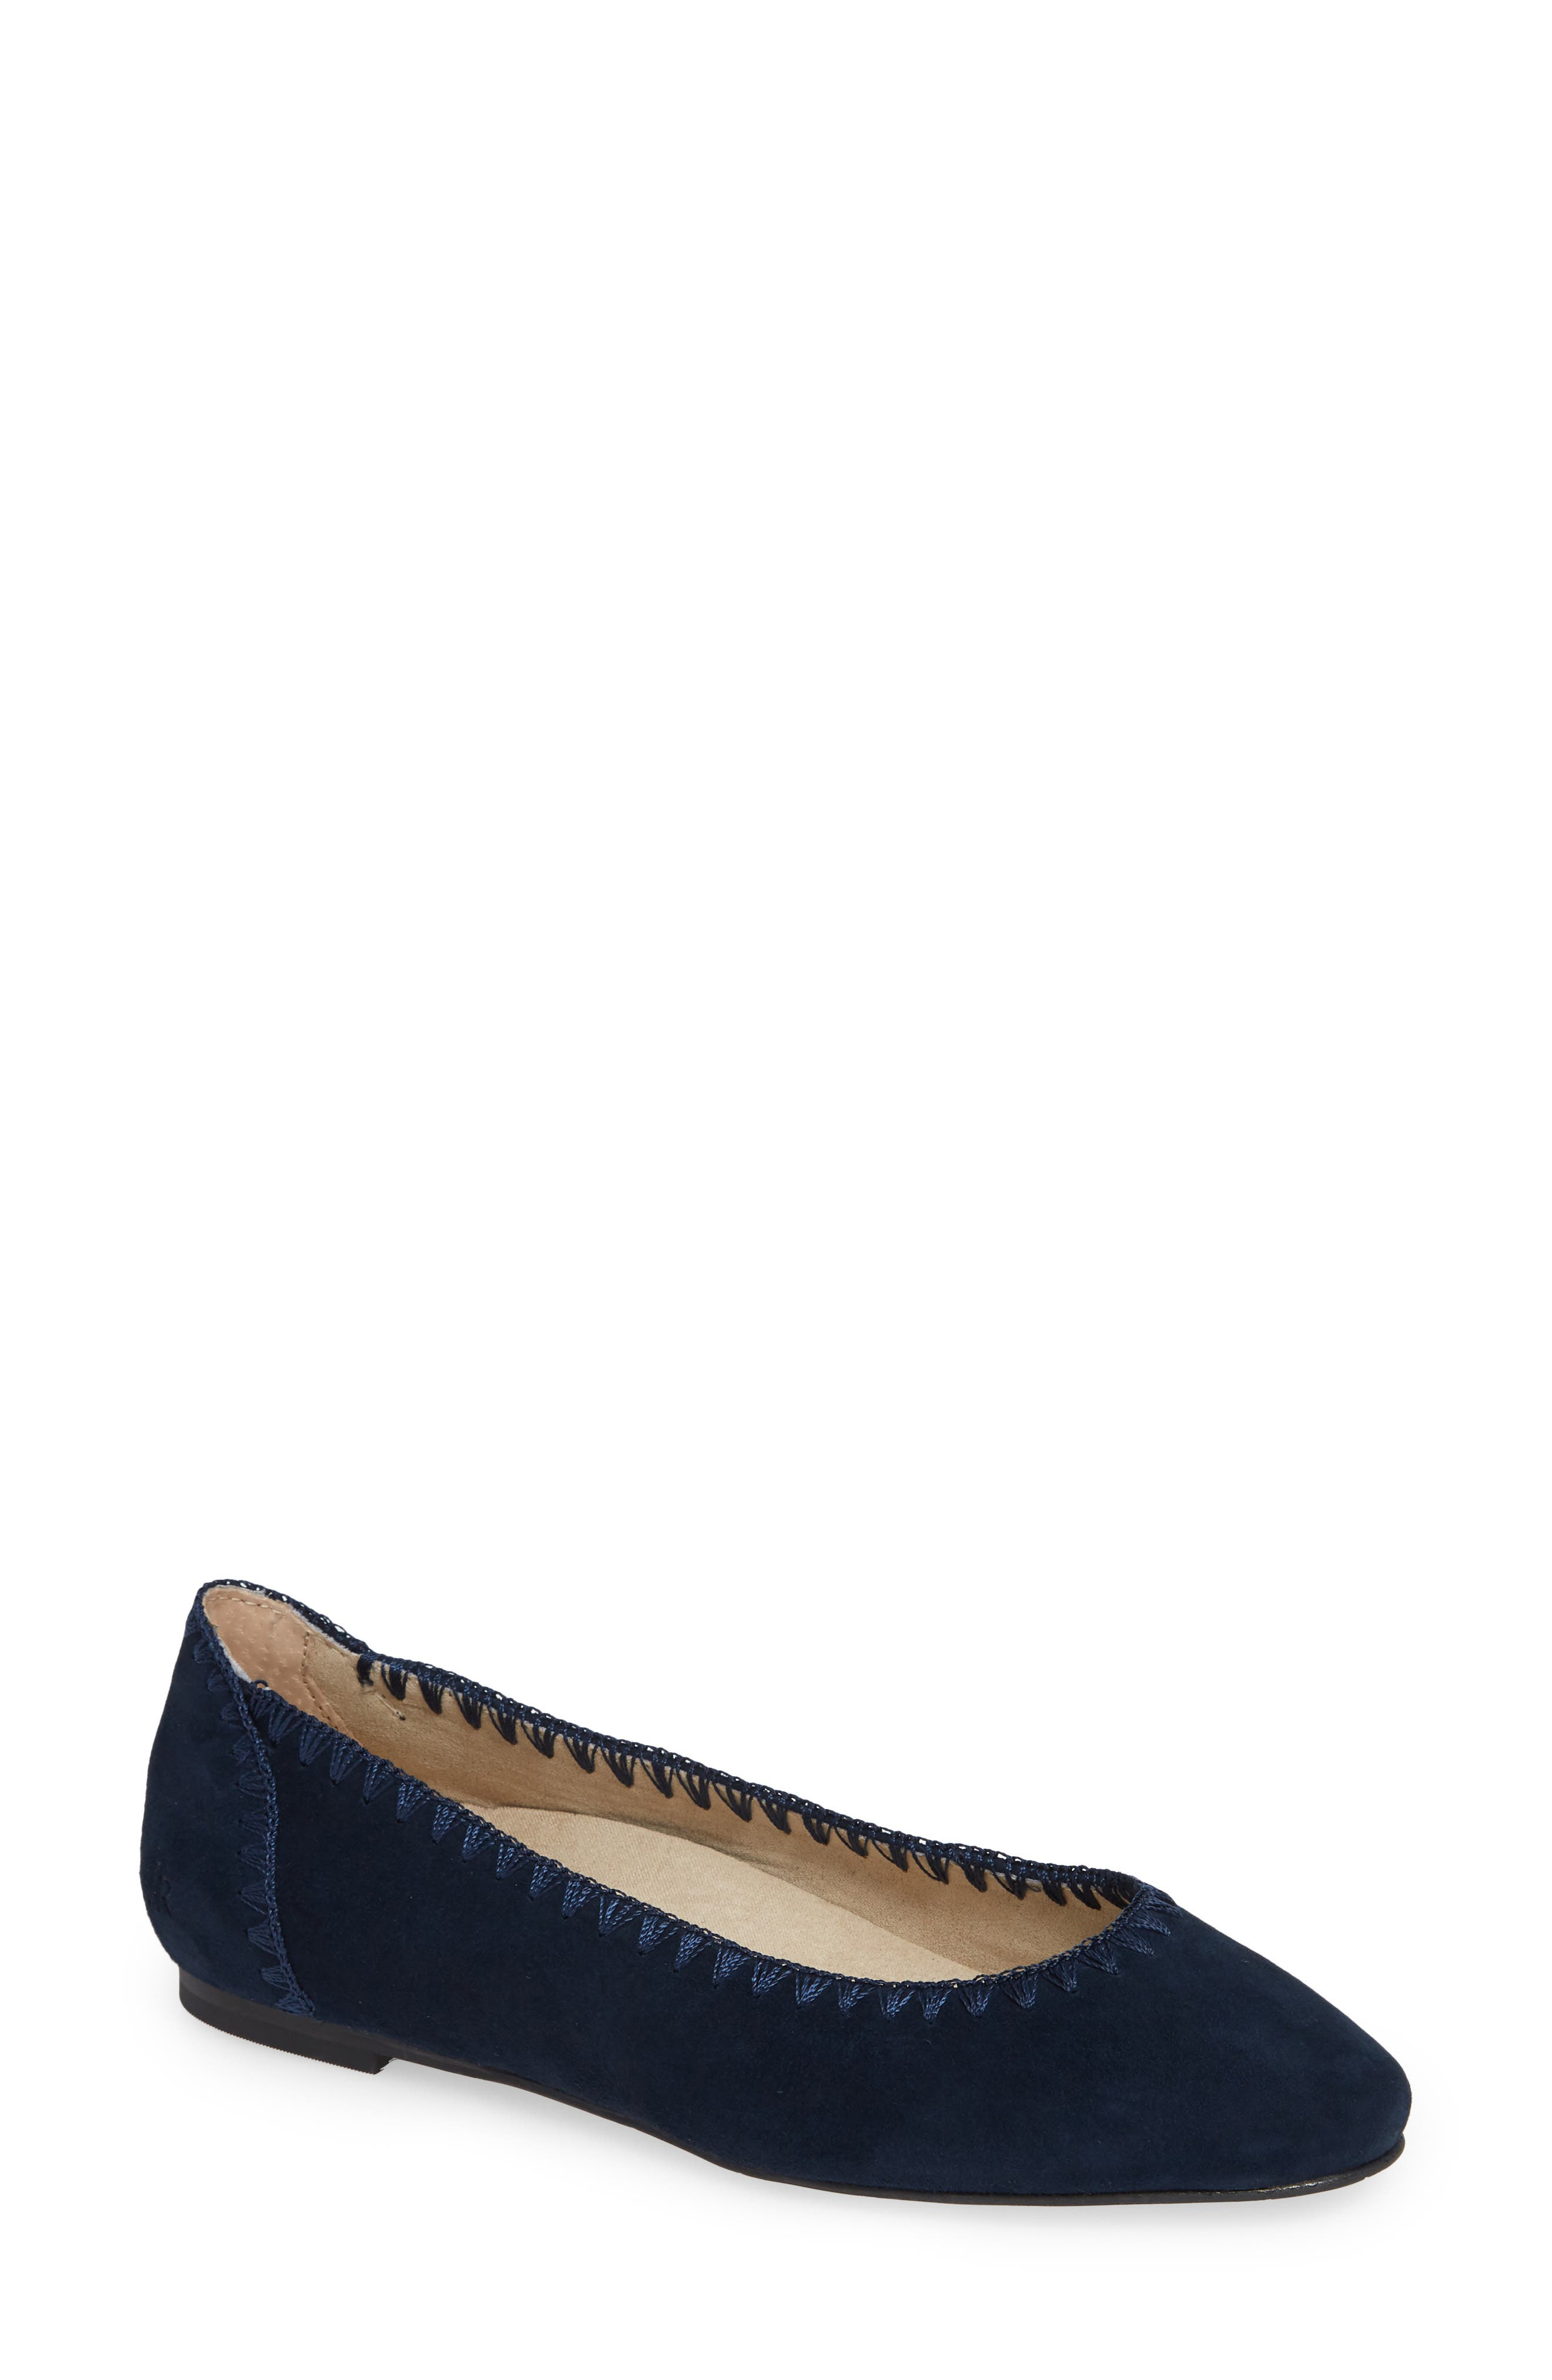 Ellie II Flat,                         Main,                         color, MIDNIGHT BLUE SUEDE